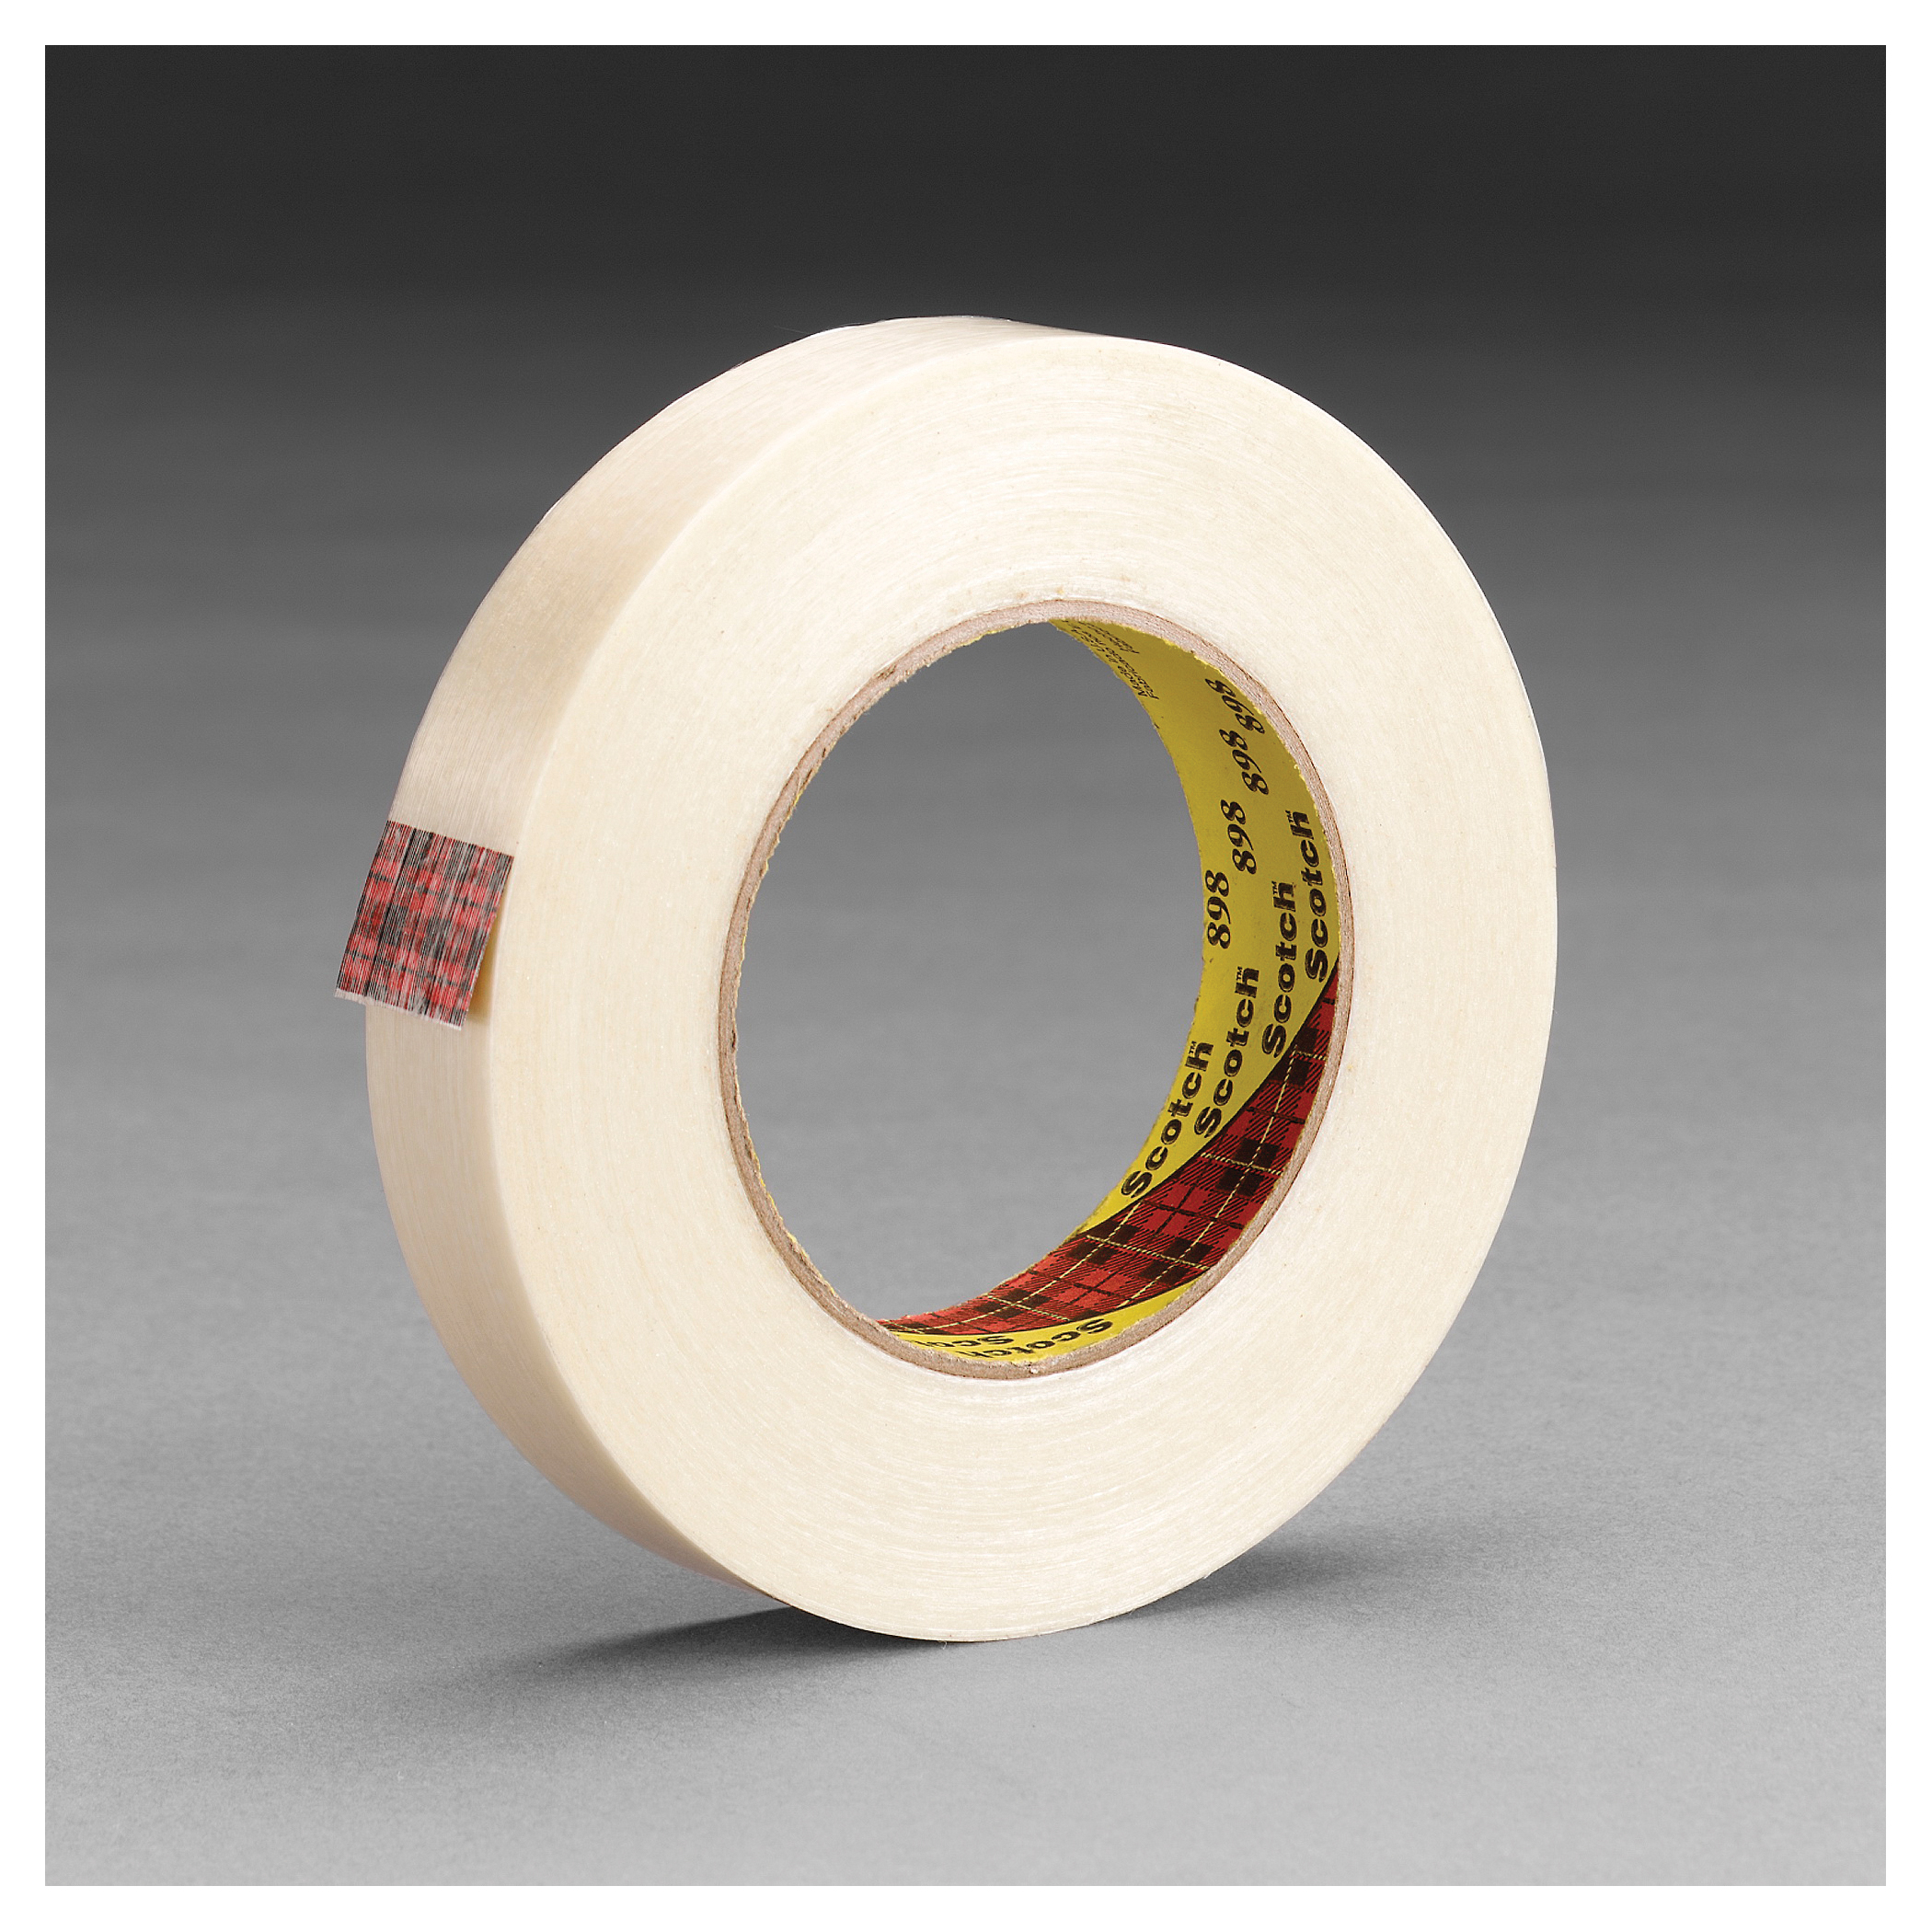 3M™ 021200-86525 897 Filament Tape, 55 m L x 24 mm W, 5 mil THK, Fiberglass Yarn Filament, Synthetic Rubber Adhesive, Polypropylene Backing, Clear